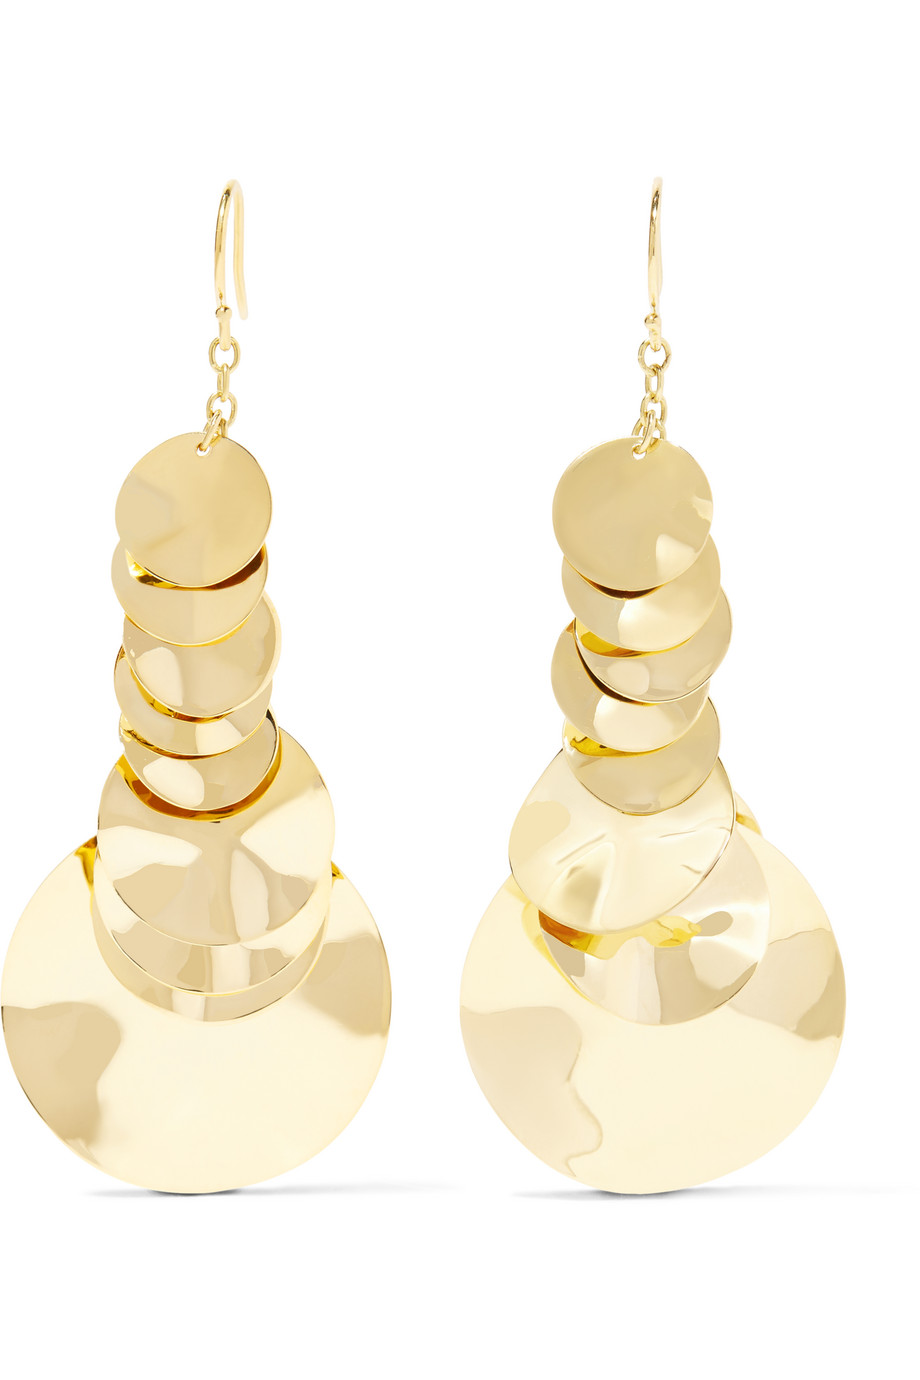 Ippolita Glamazon Spotlight 18-Karat Gold Earrings, Women's